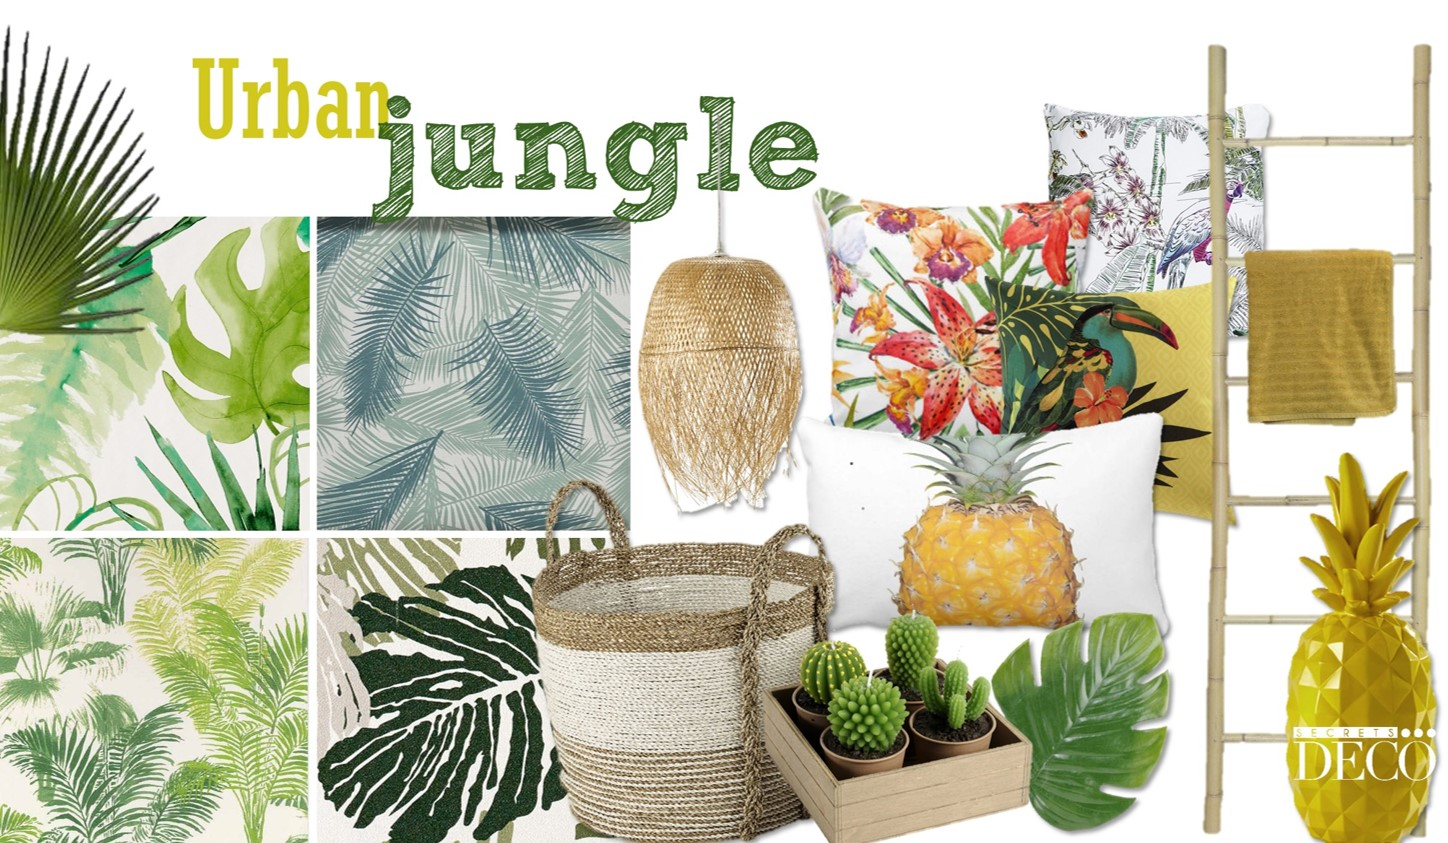 Urban jungle la d coration l 39 esprit tropical for La decoration d interieur